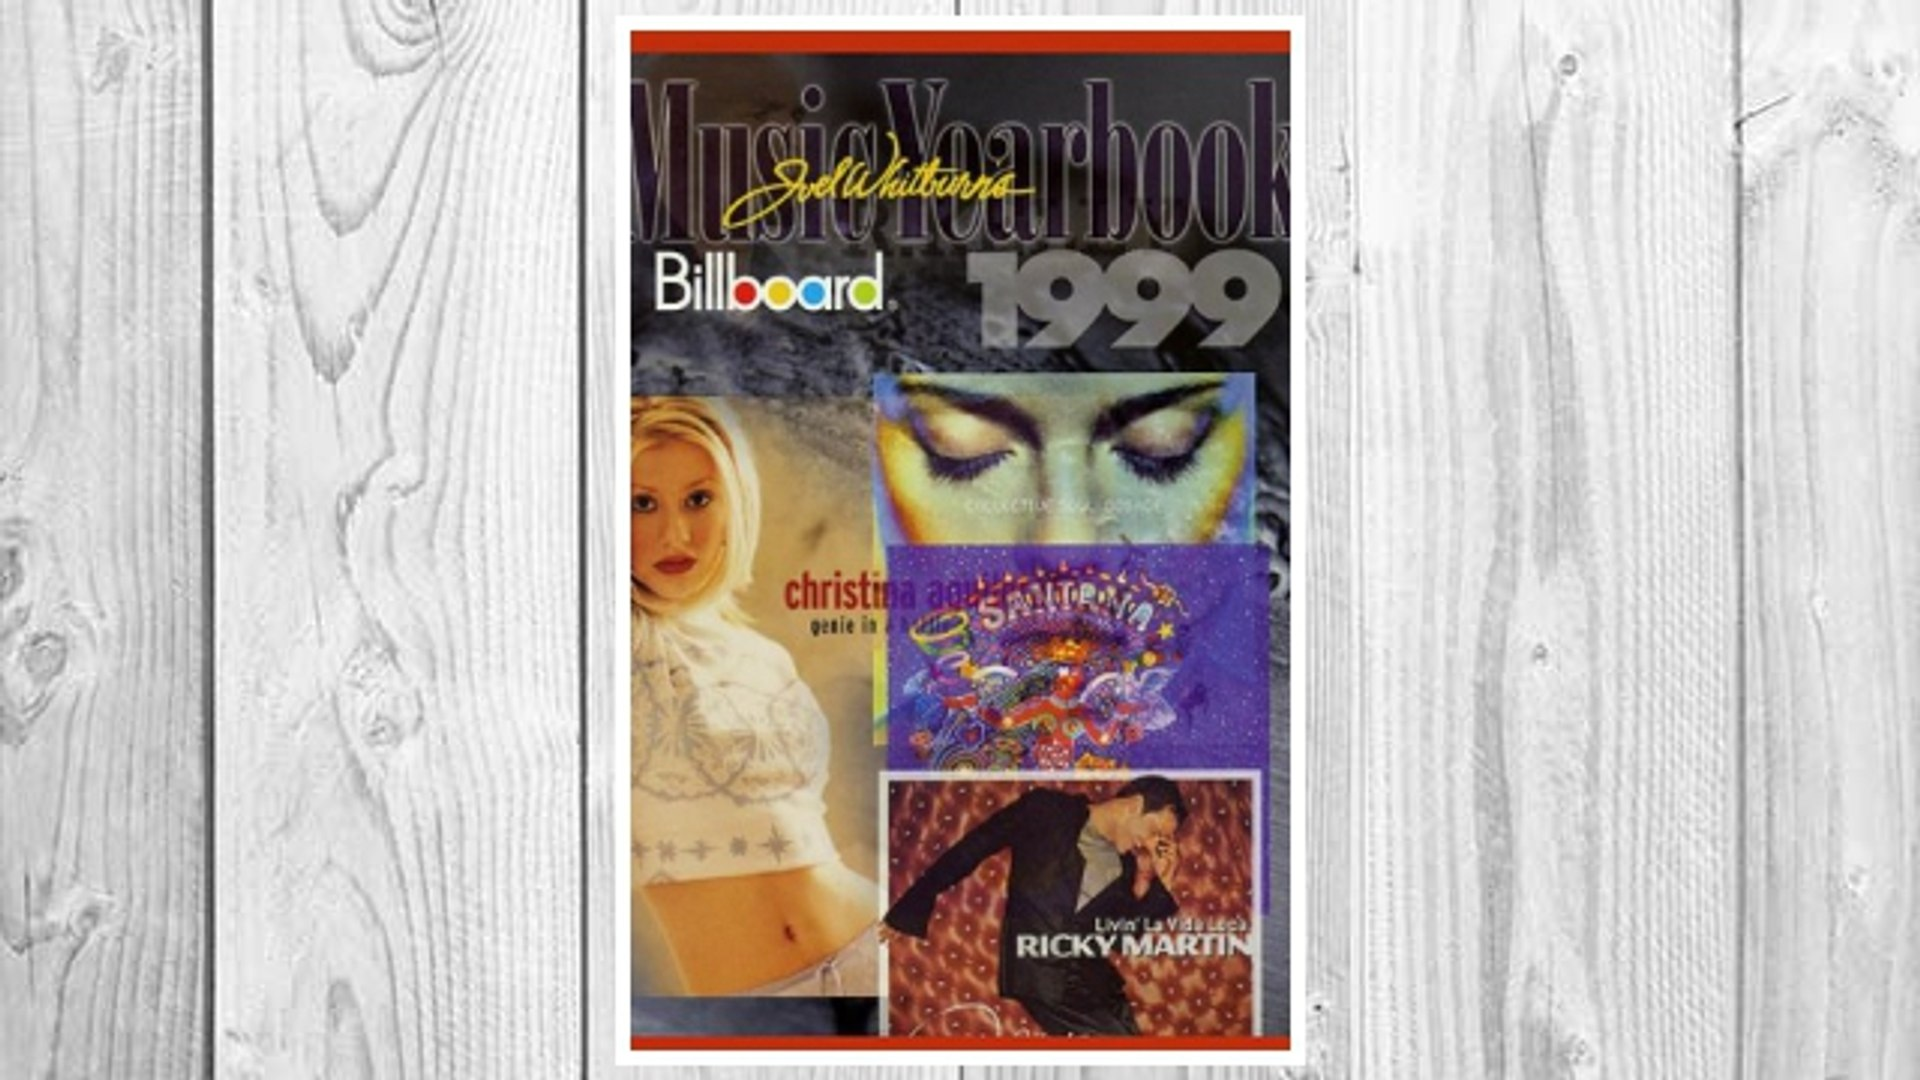 Download PDF 1999 Billboard Music Yearbook (Billboard's Music Yearbook) FREE